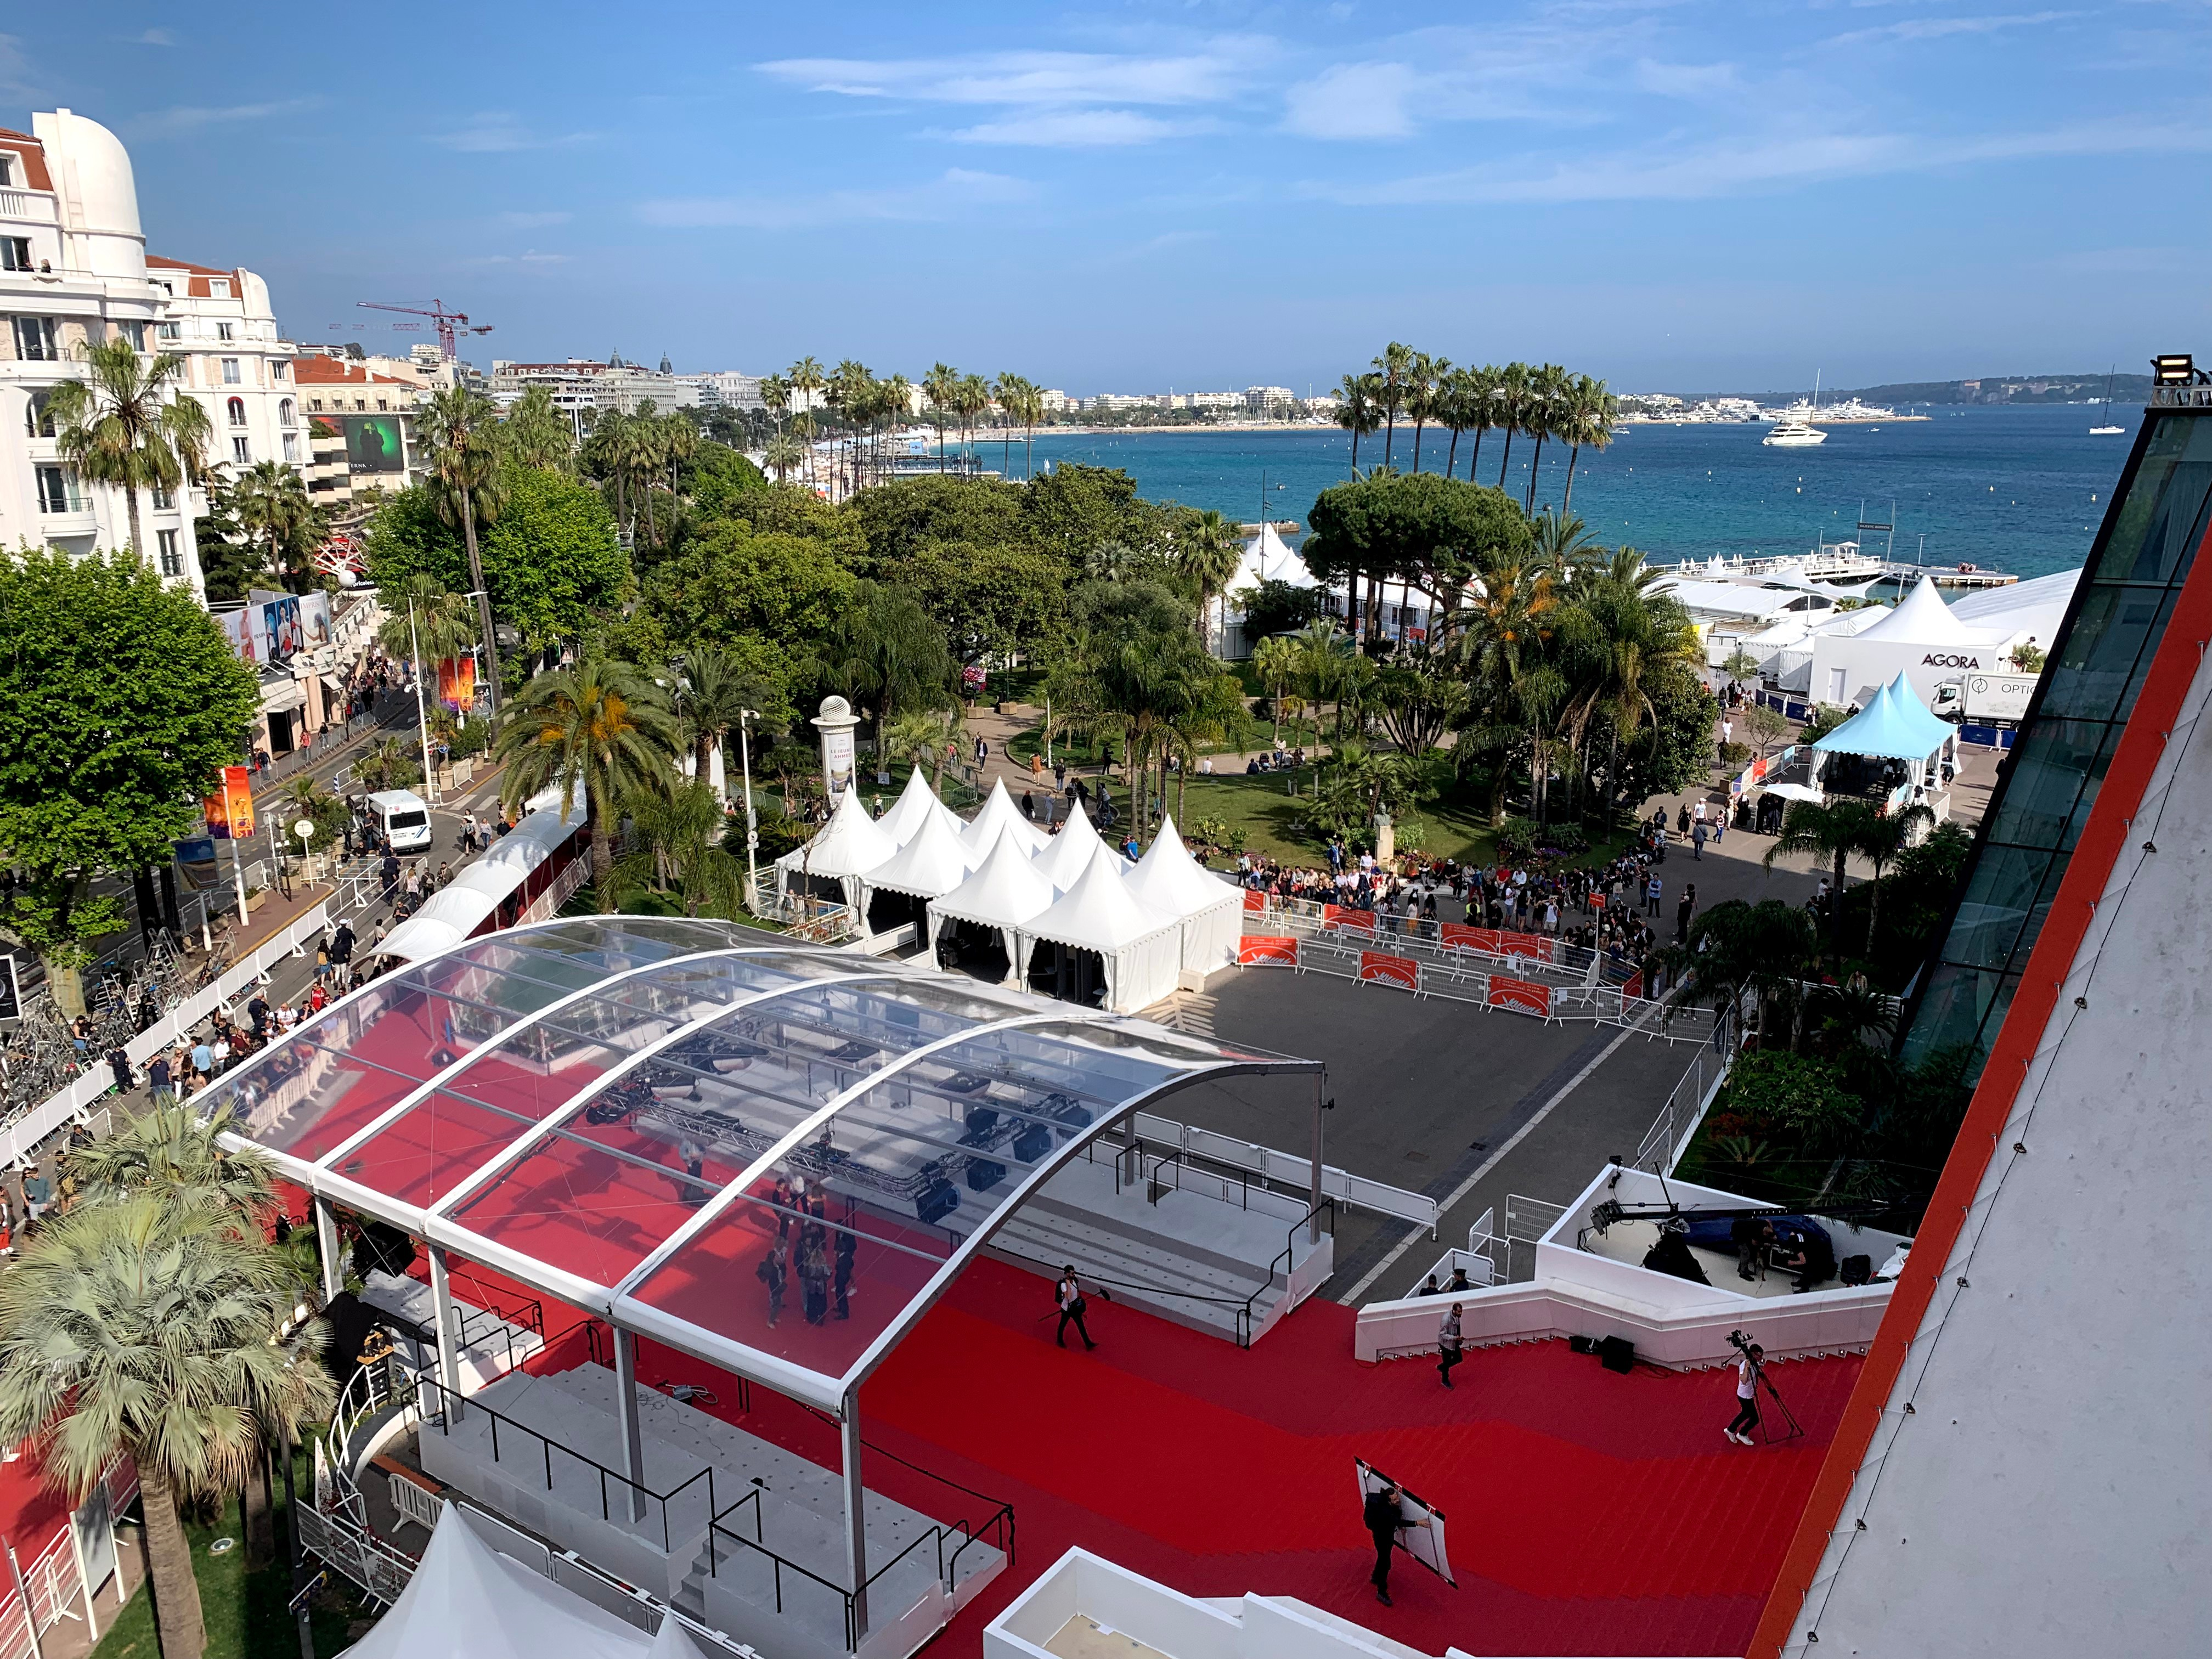 The Cannes Film Festival red carpet photographed from above, with a beach and palm trees in the background